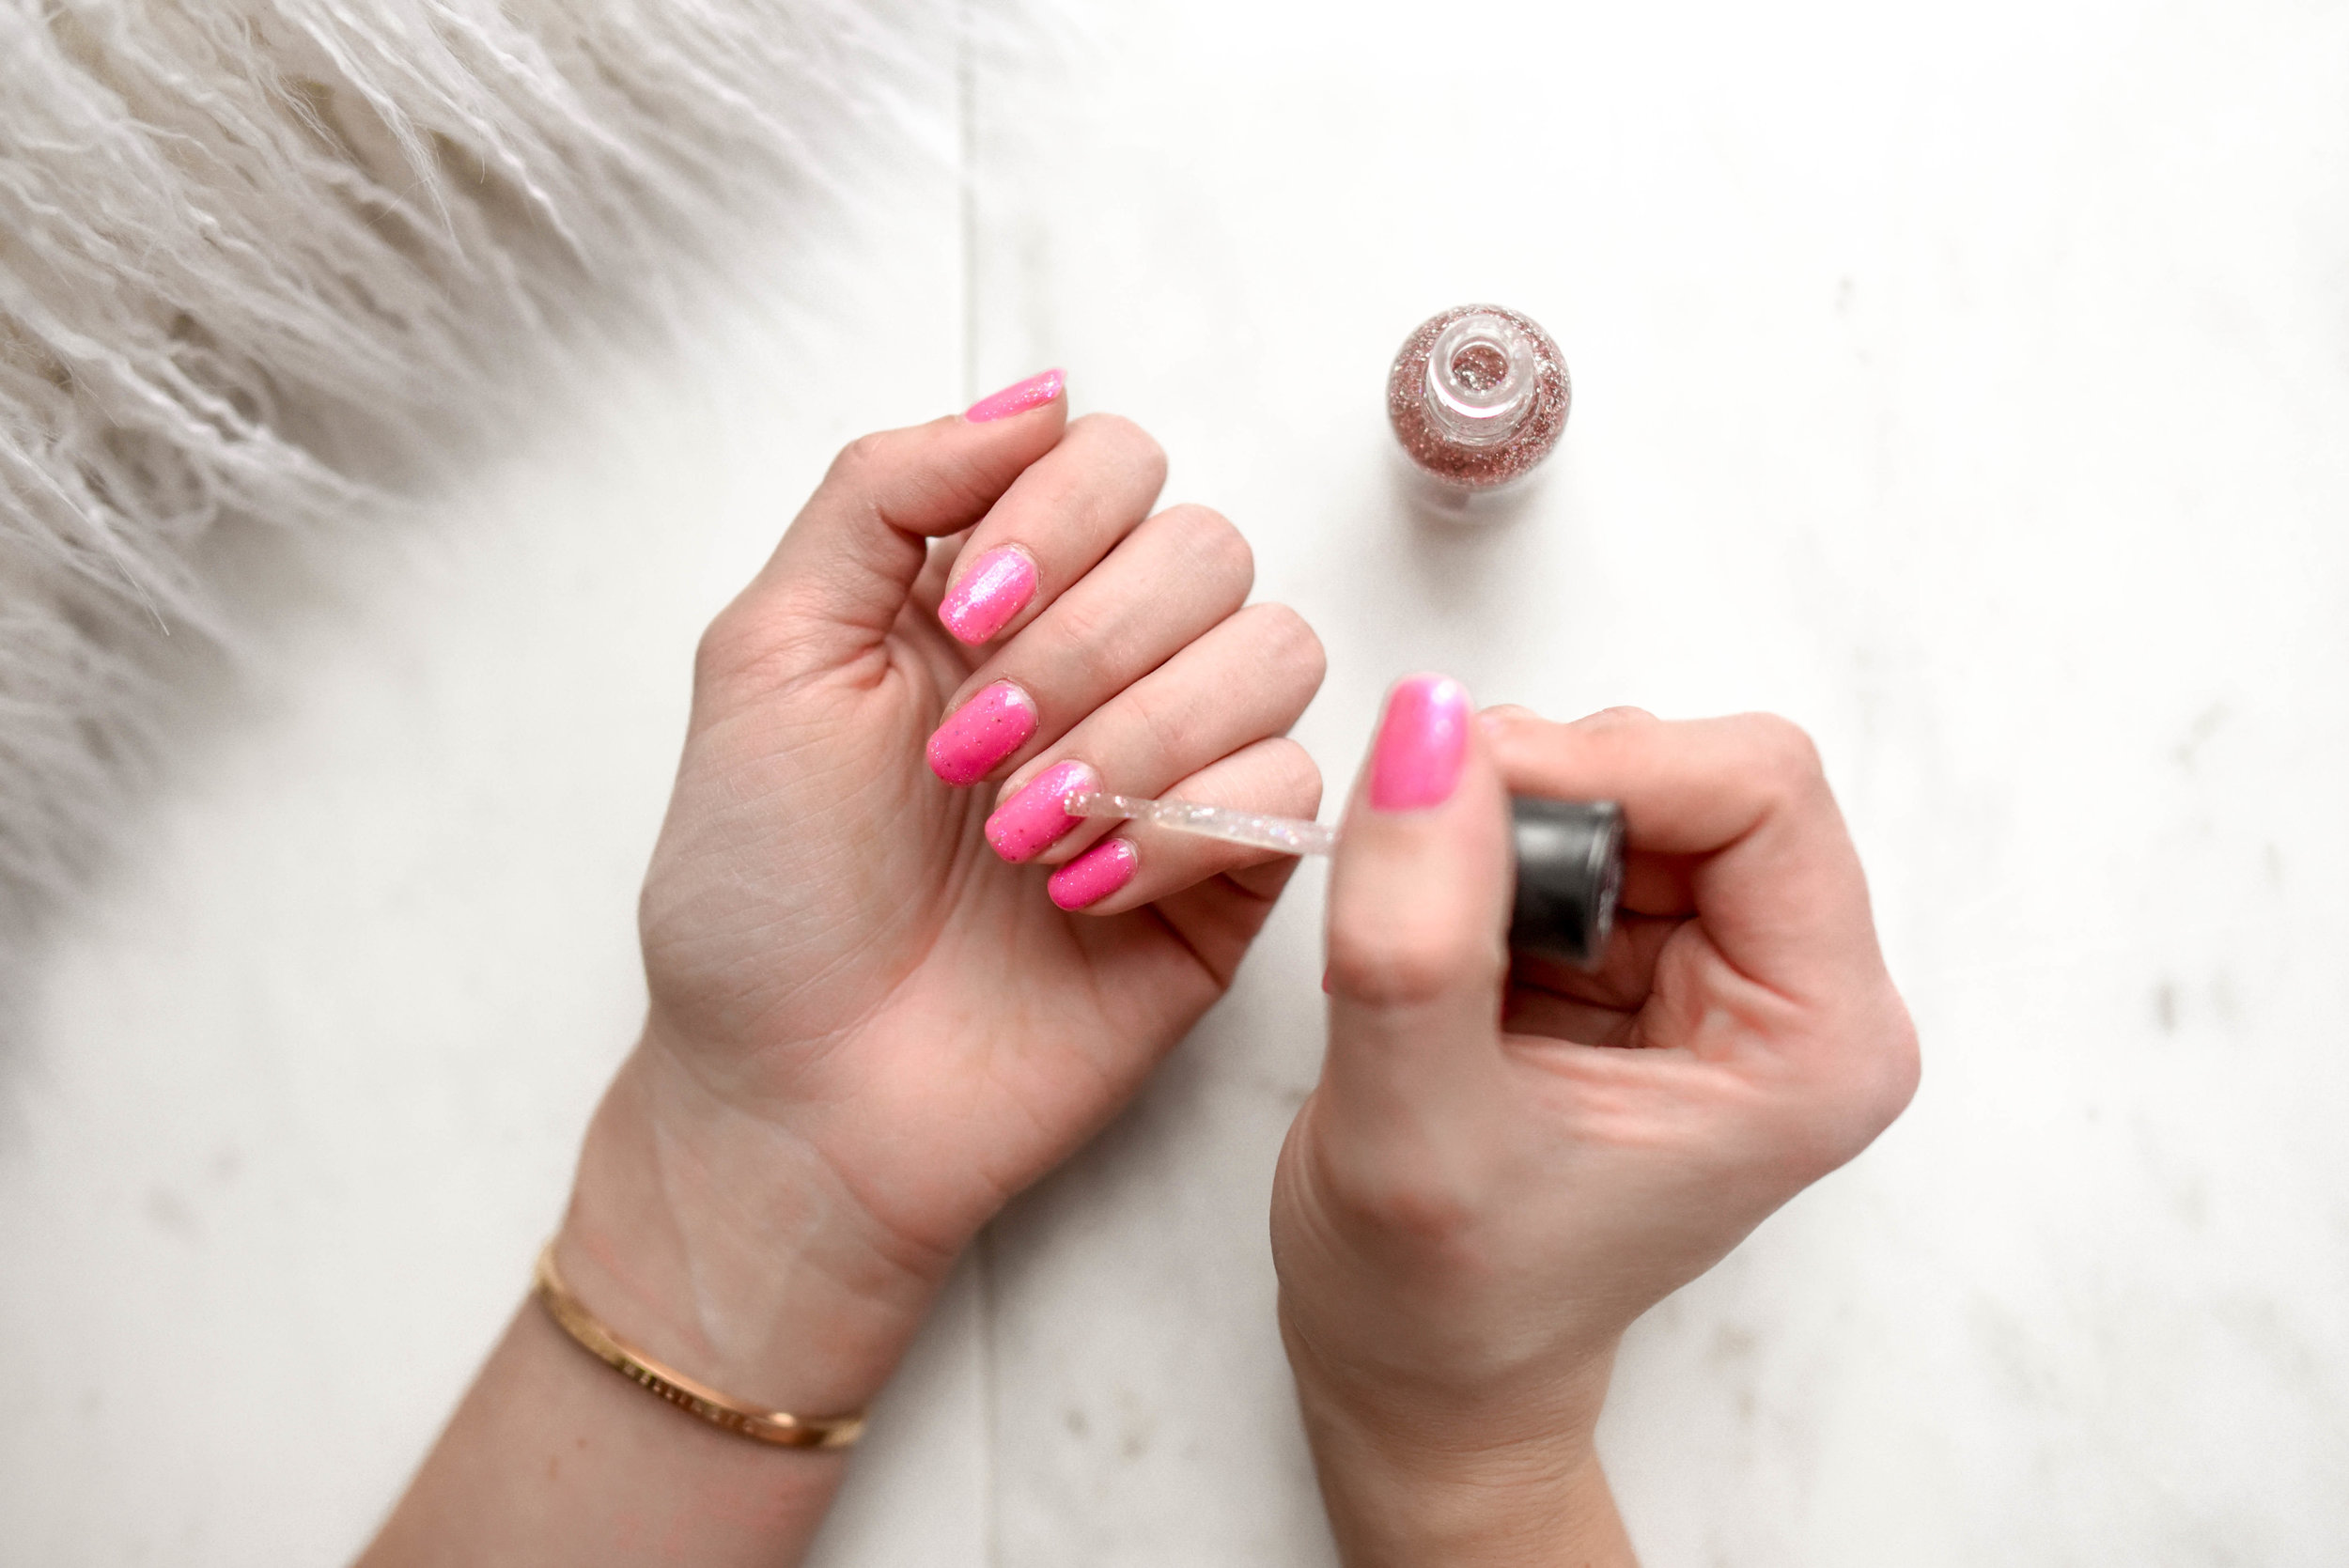 Organic Solvents in Nail Polish Linked to Autoimmune Disease Development